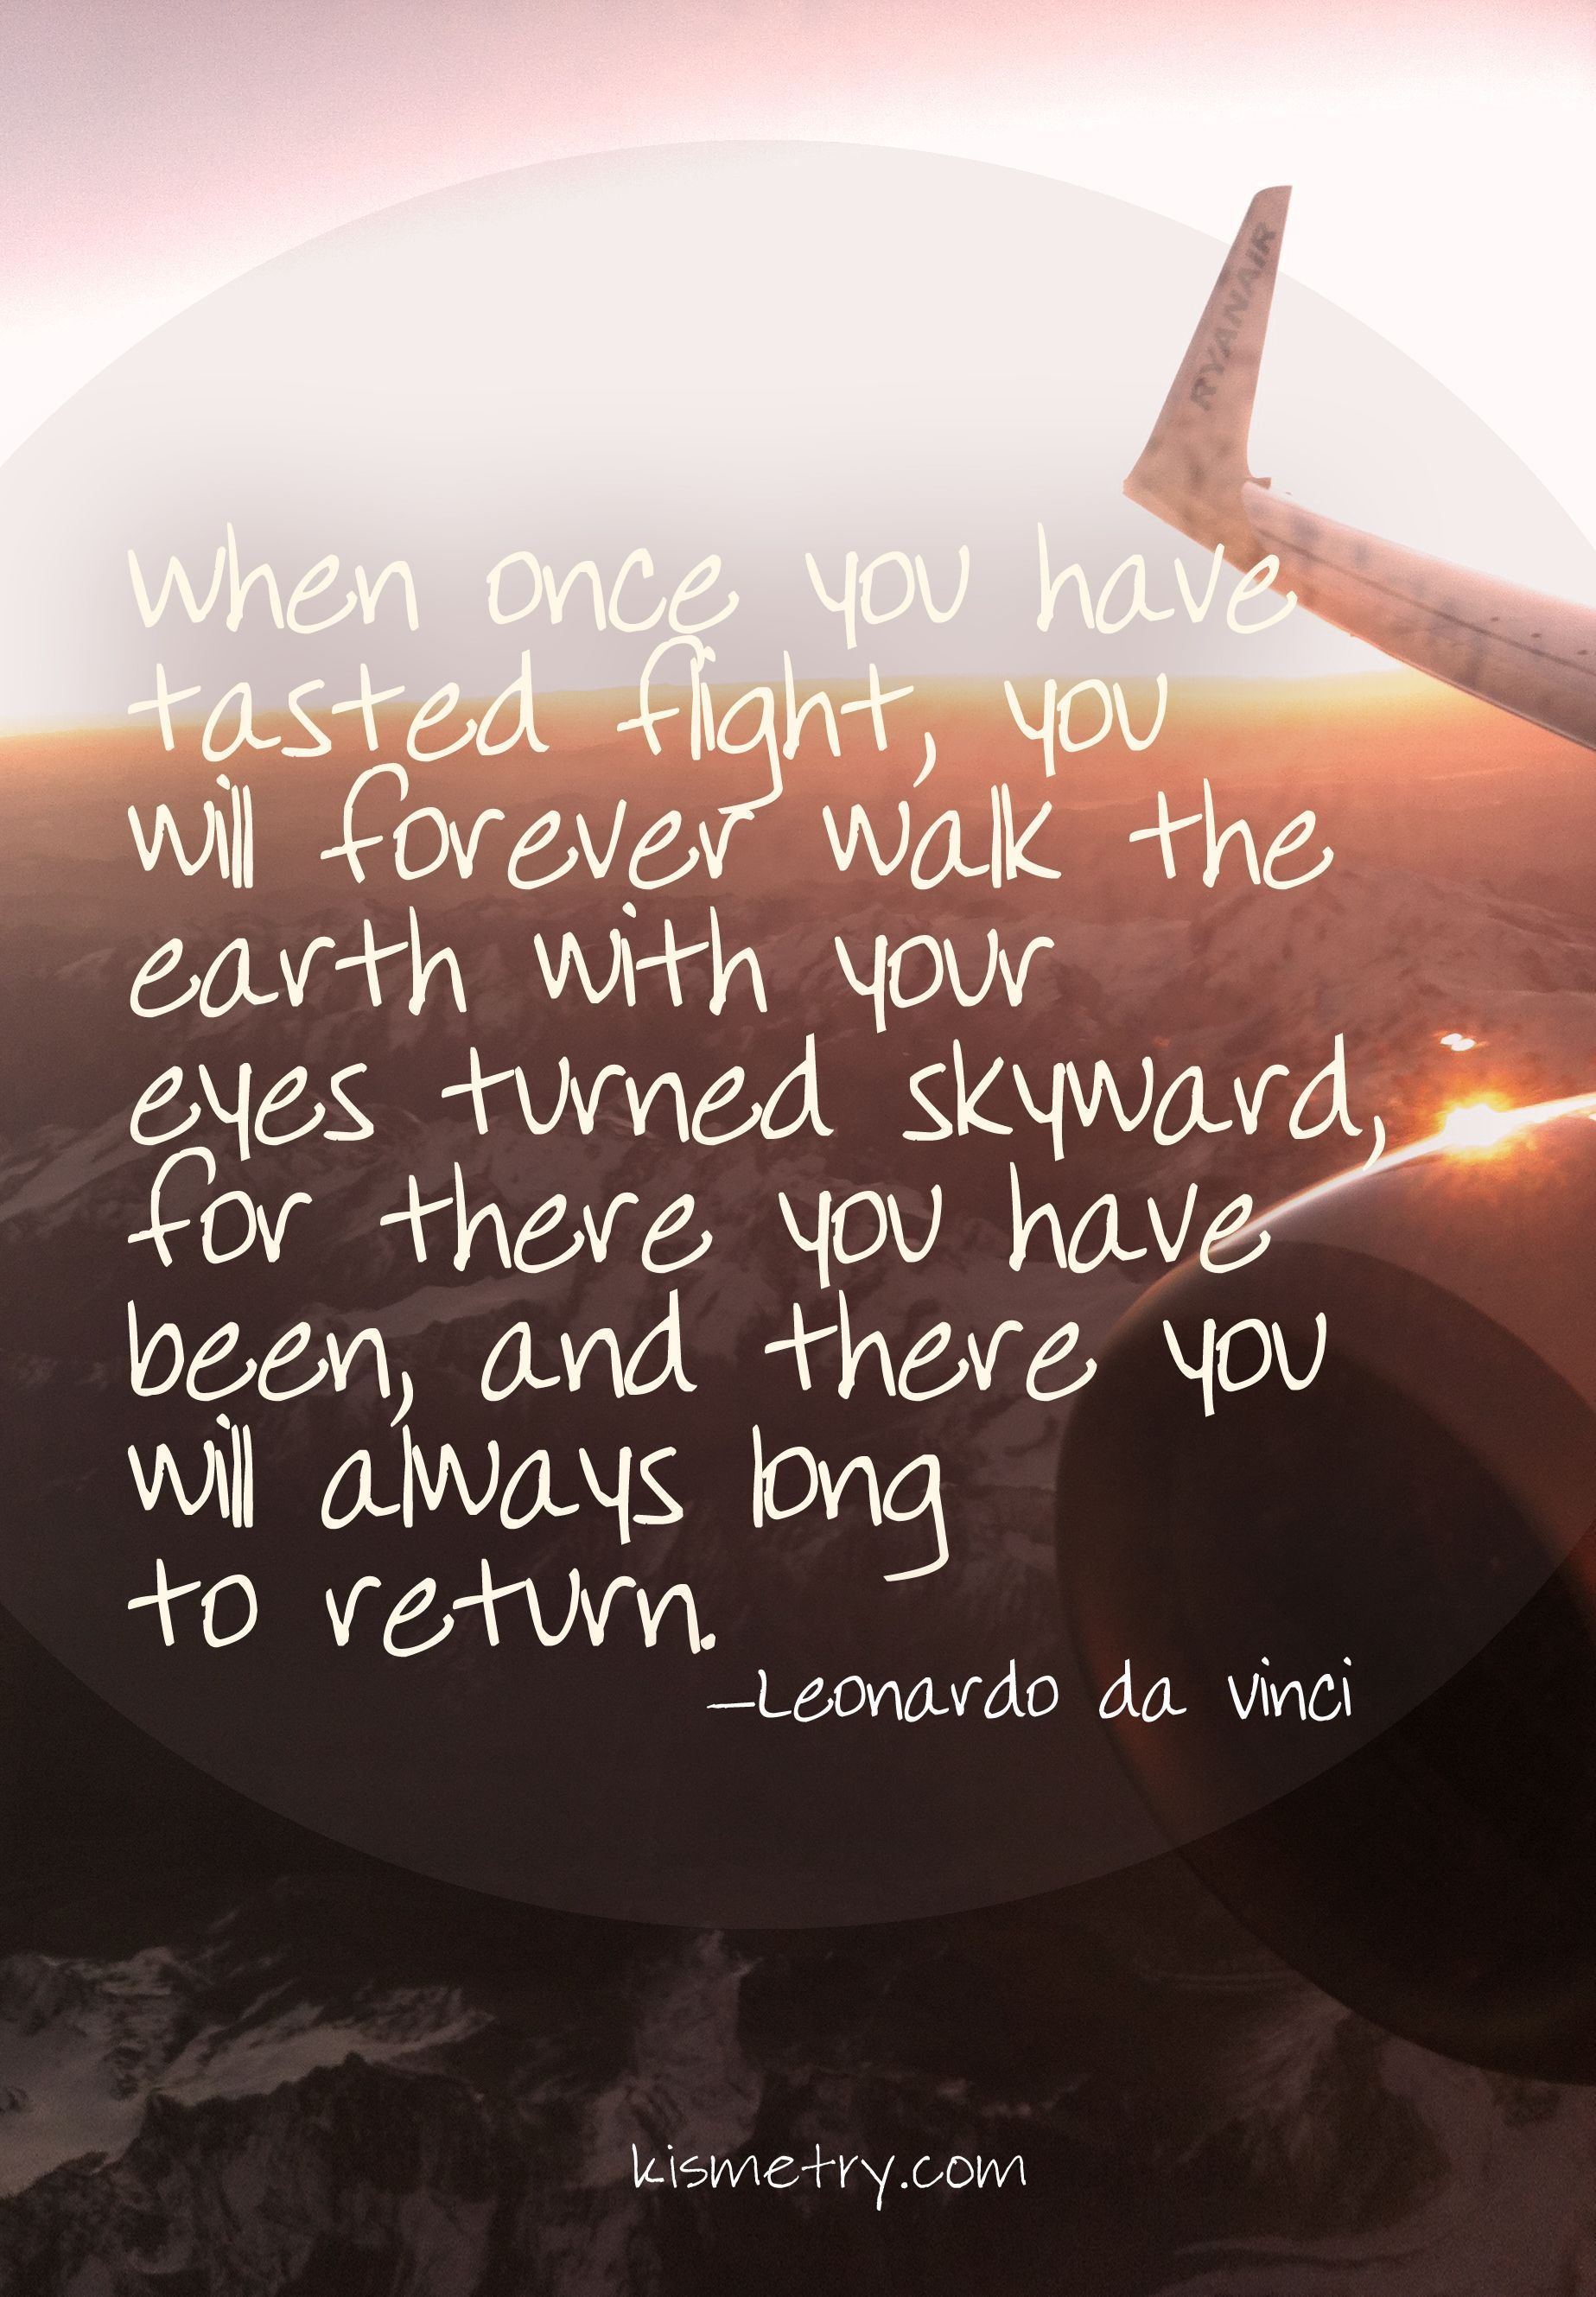 When Once You Have Tasted Flight Travel Samolet Citaty I Airplane Quotes Pilot Quotes Fly Quotes